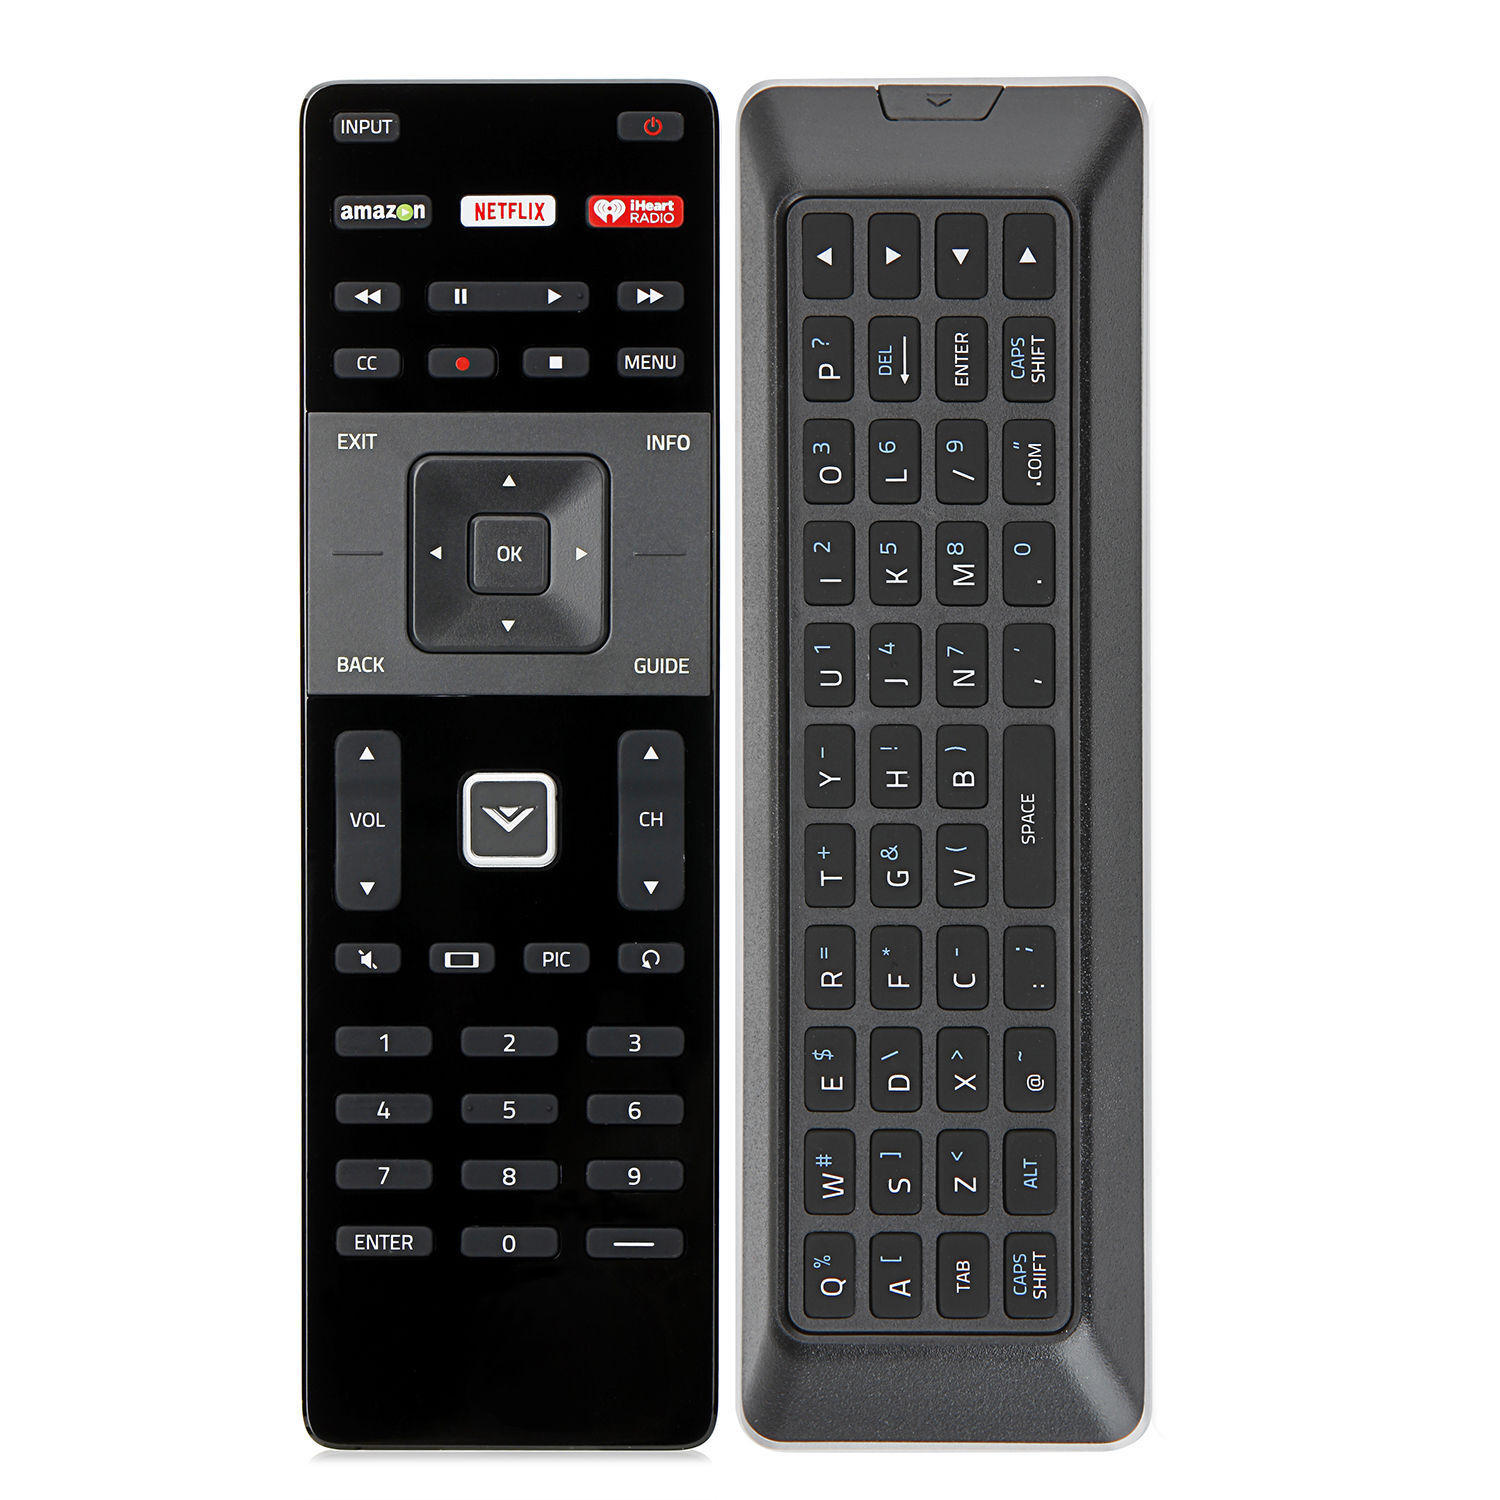 Brand New Original Vizio XRT500 LED HDTV Remote Control with